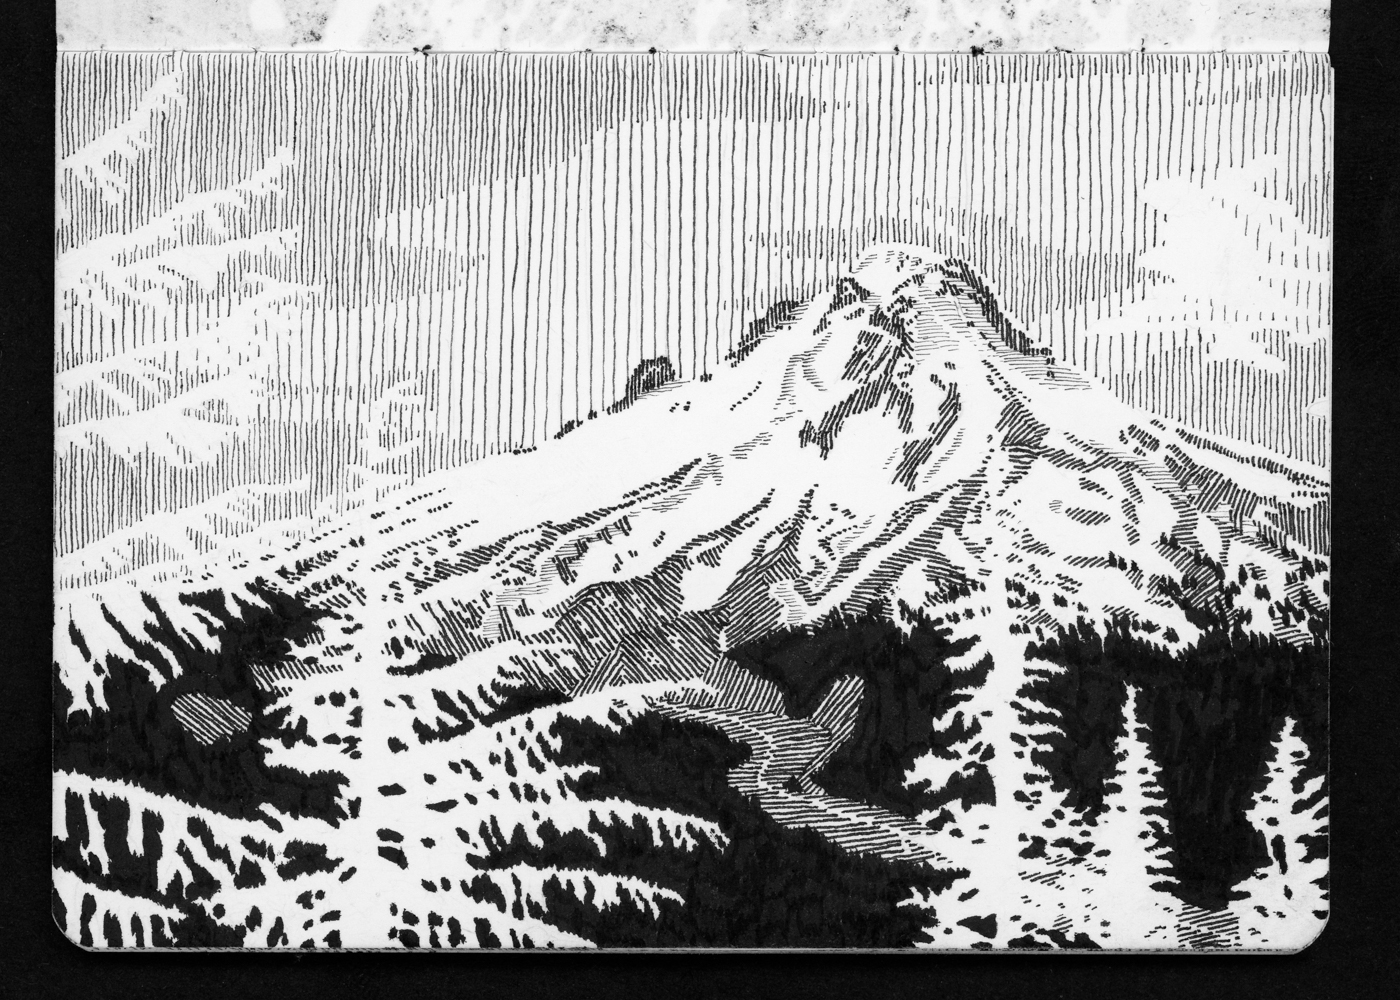 05-07 Mt Hood Over White River Canyon from Barlow Butte.jpg